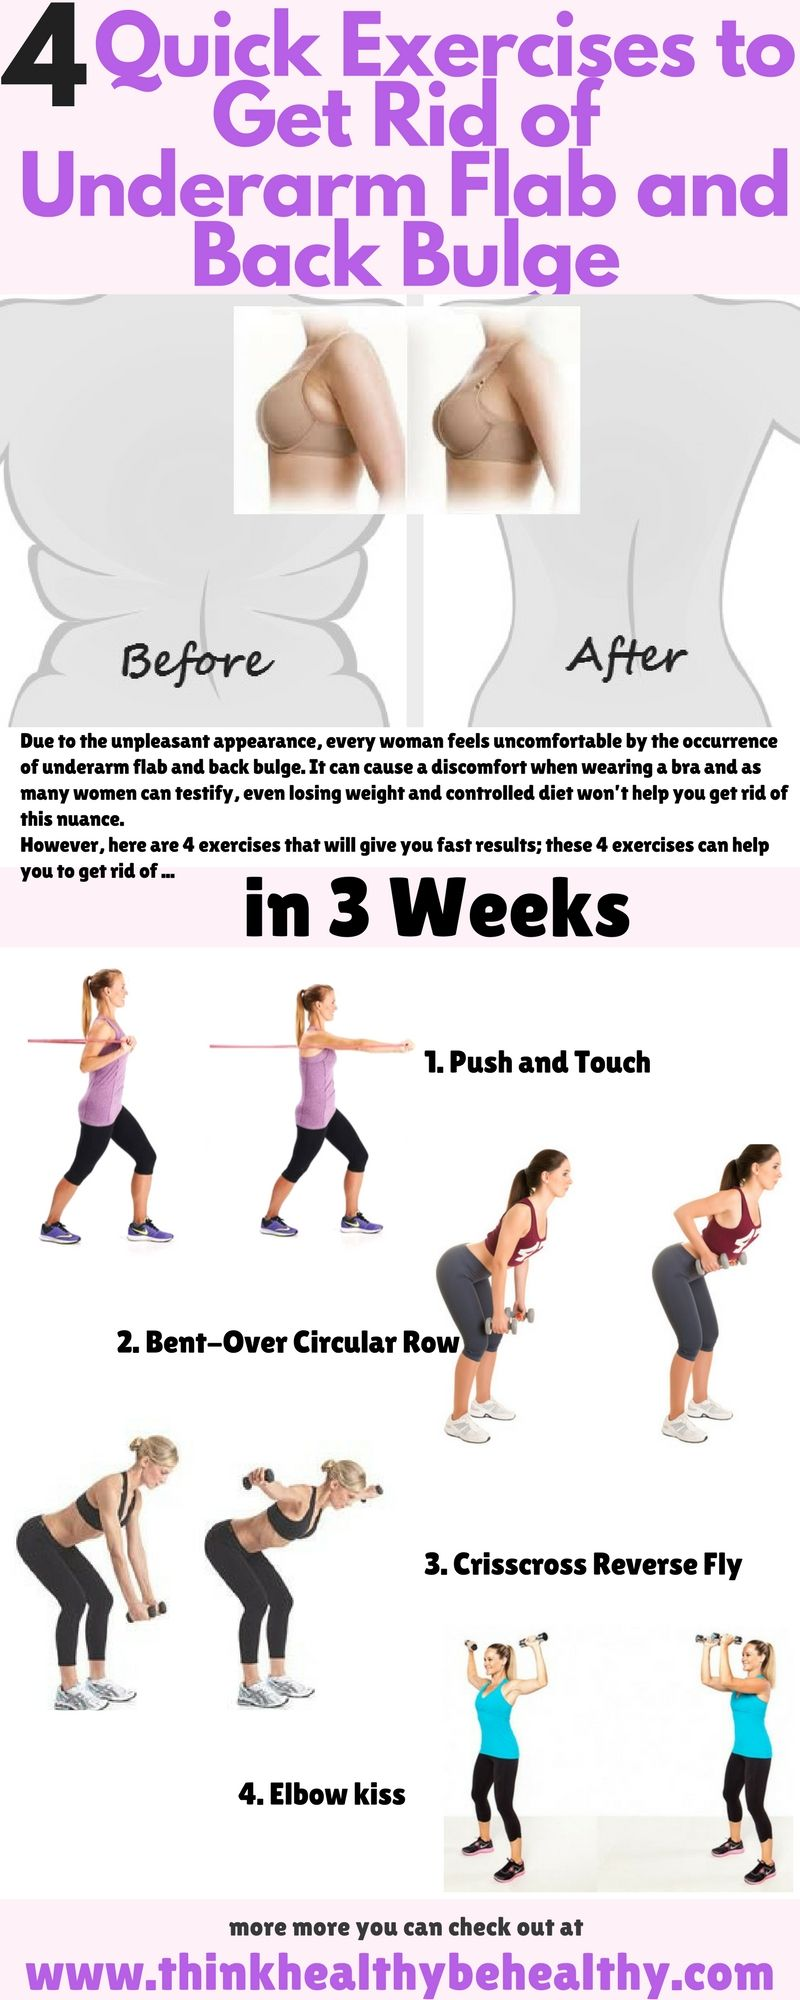 b669630cccf1d 4 Quick Exercises to Get Rid of Underarm Flab and Back Bulge in 3 Weeks